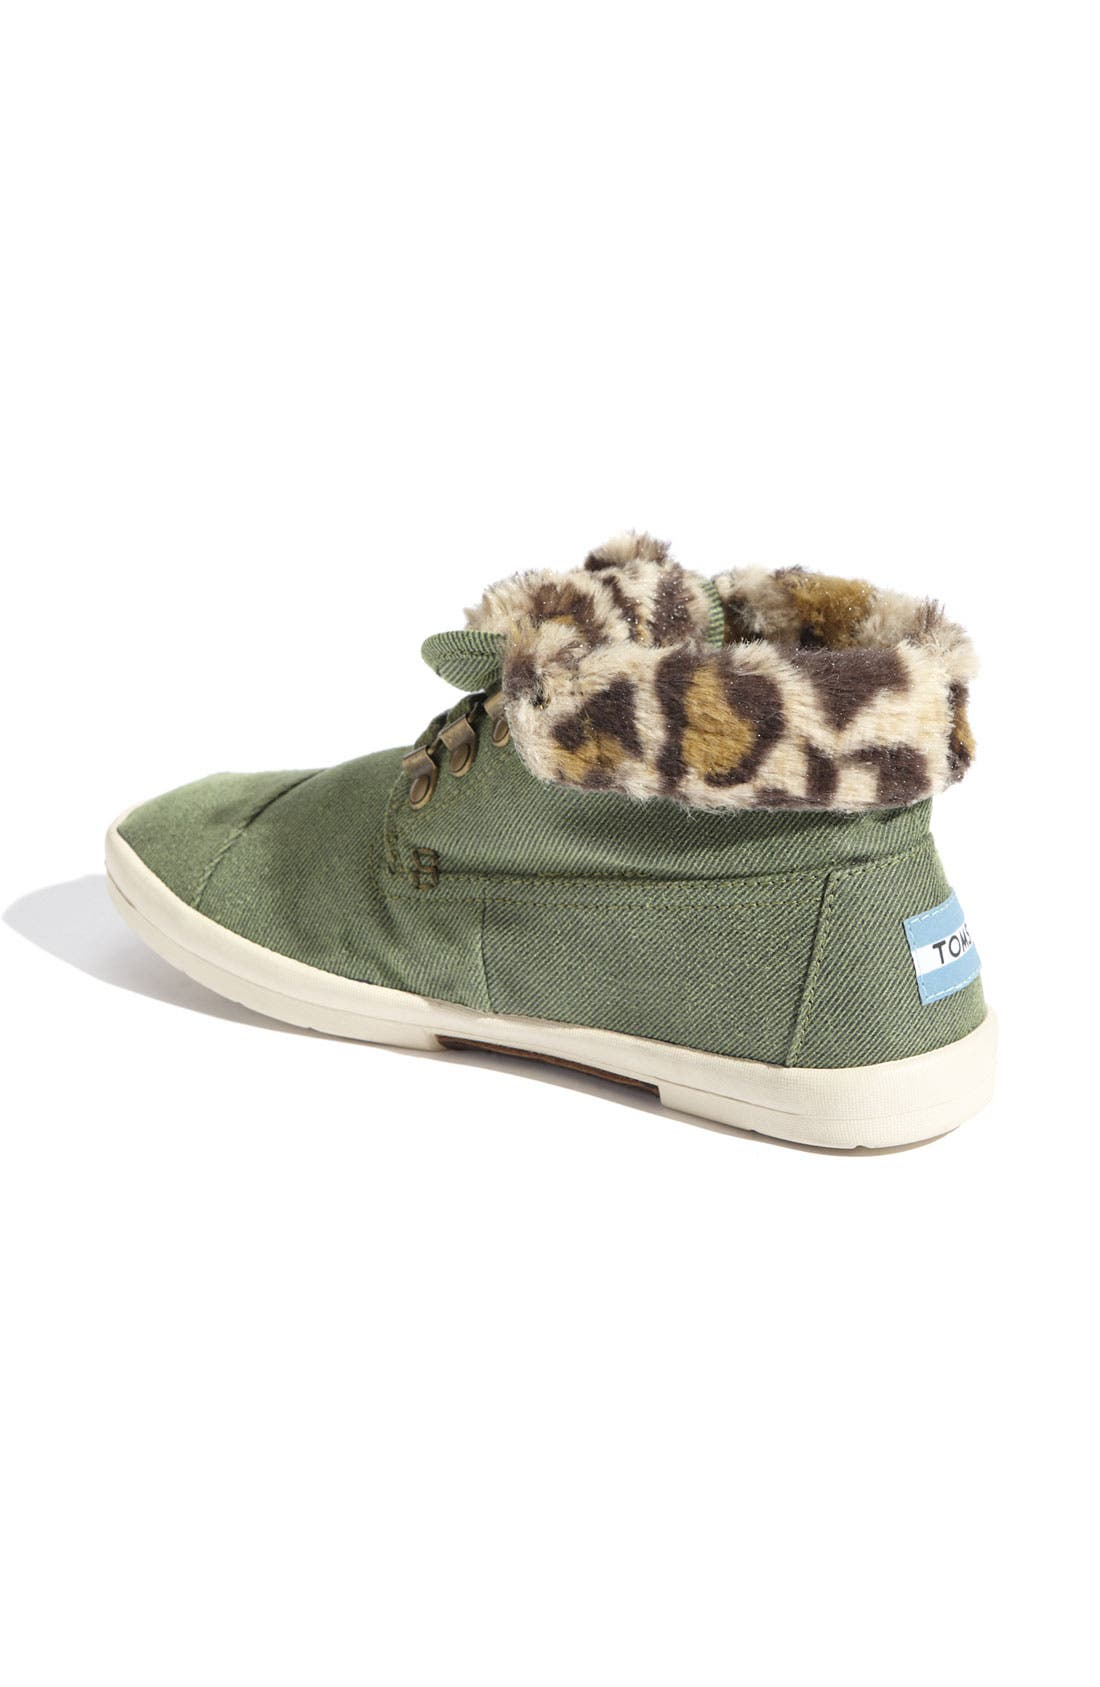 Alternate Image 2  - TOMS 'Botas - Highlands' Fleece Chukka Boot (Women)